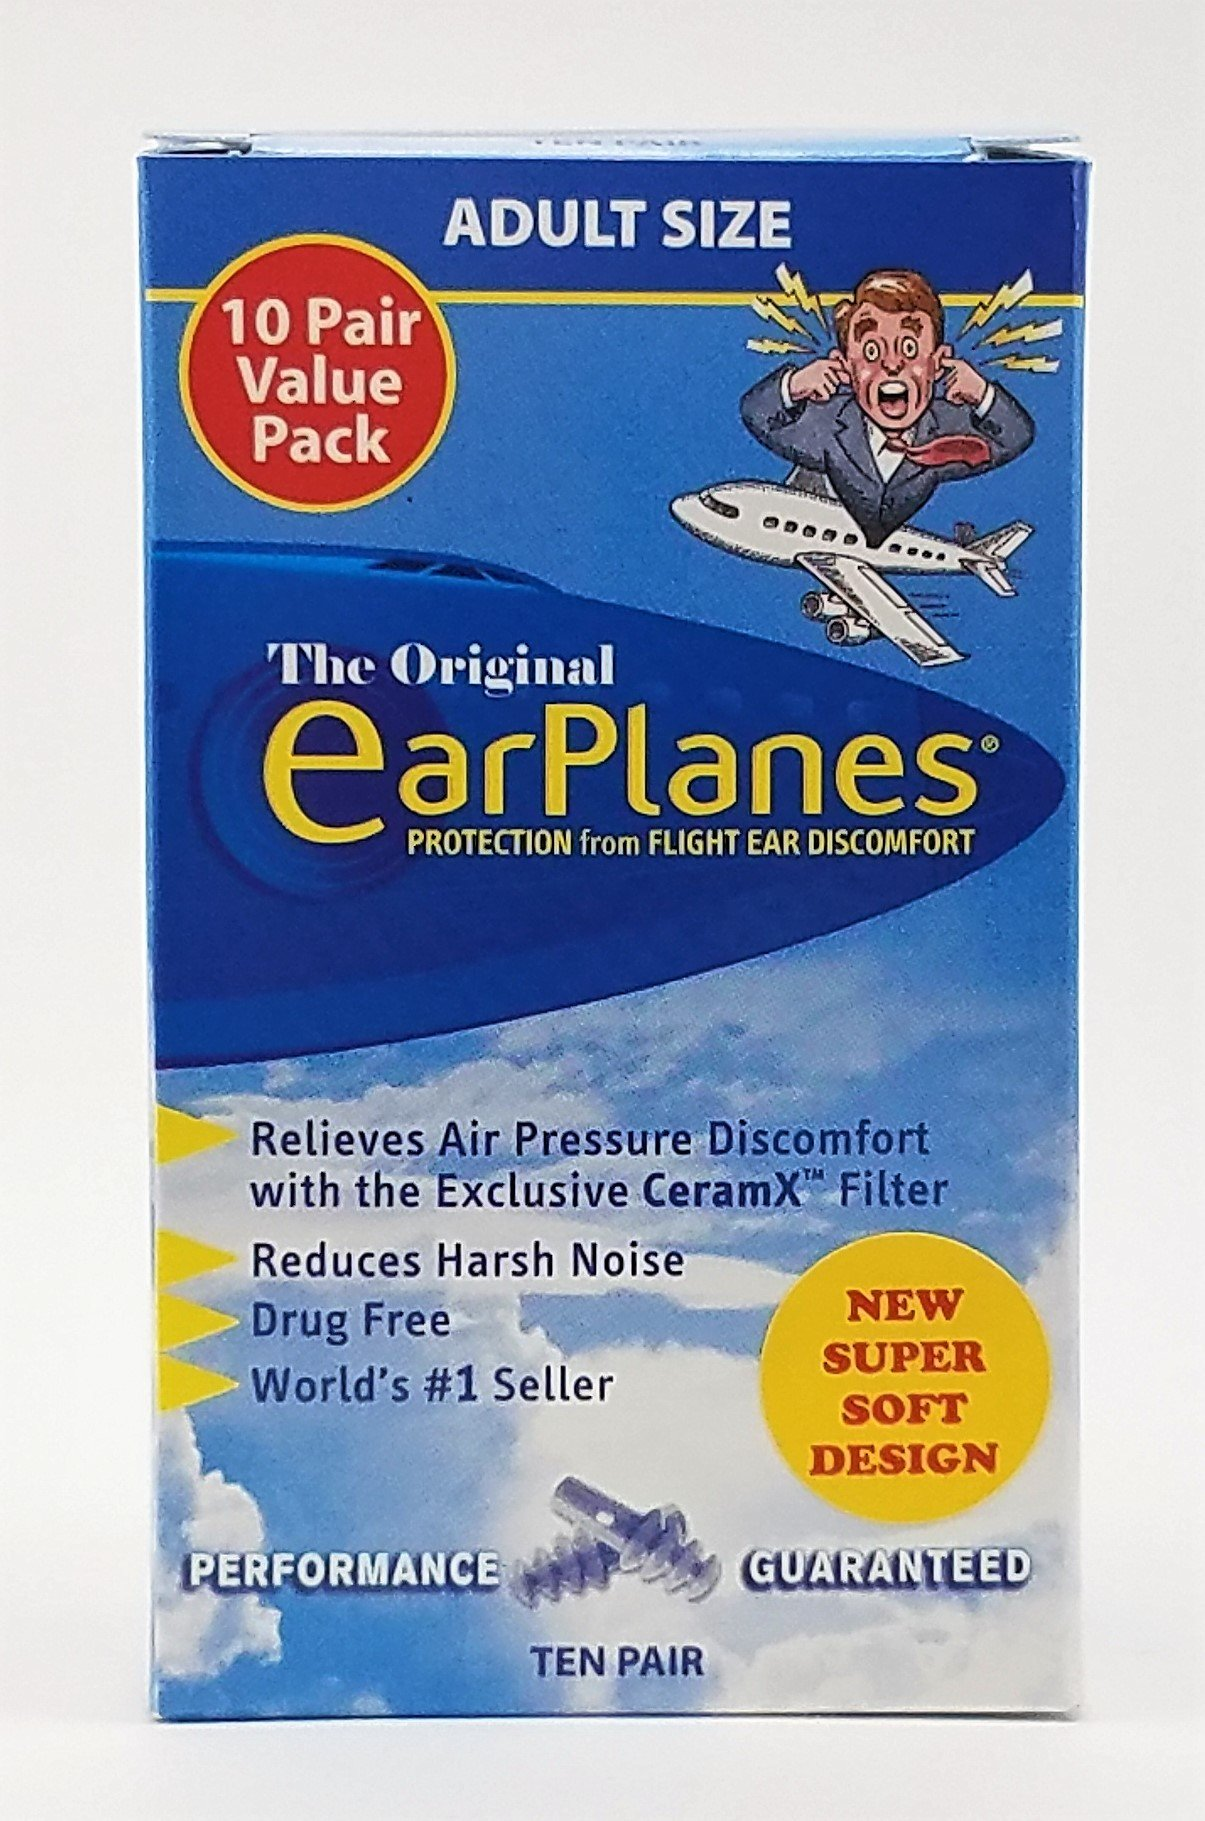 New Super Soft Adult EarPlanes® Ear Plugs Airplane Travel Ear Protection 10 Pair